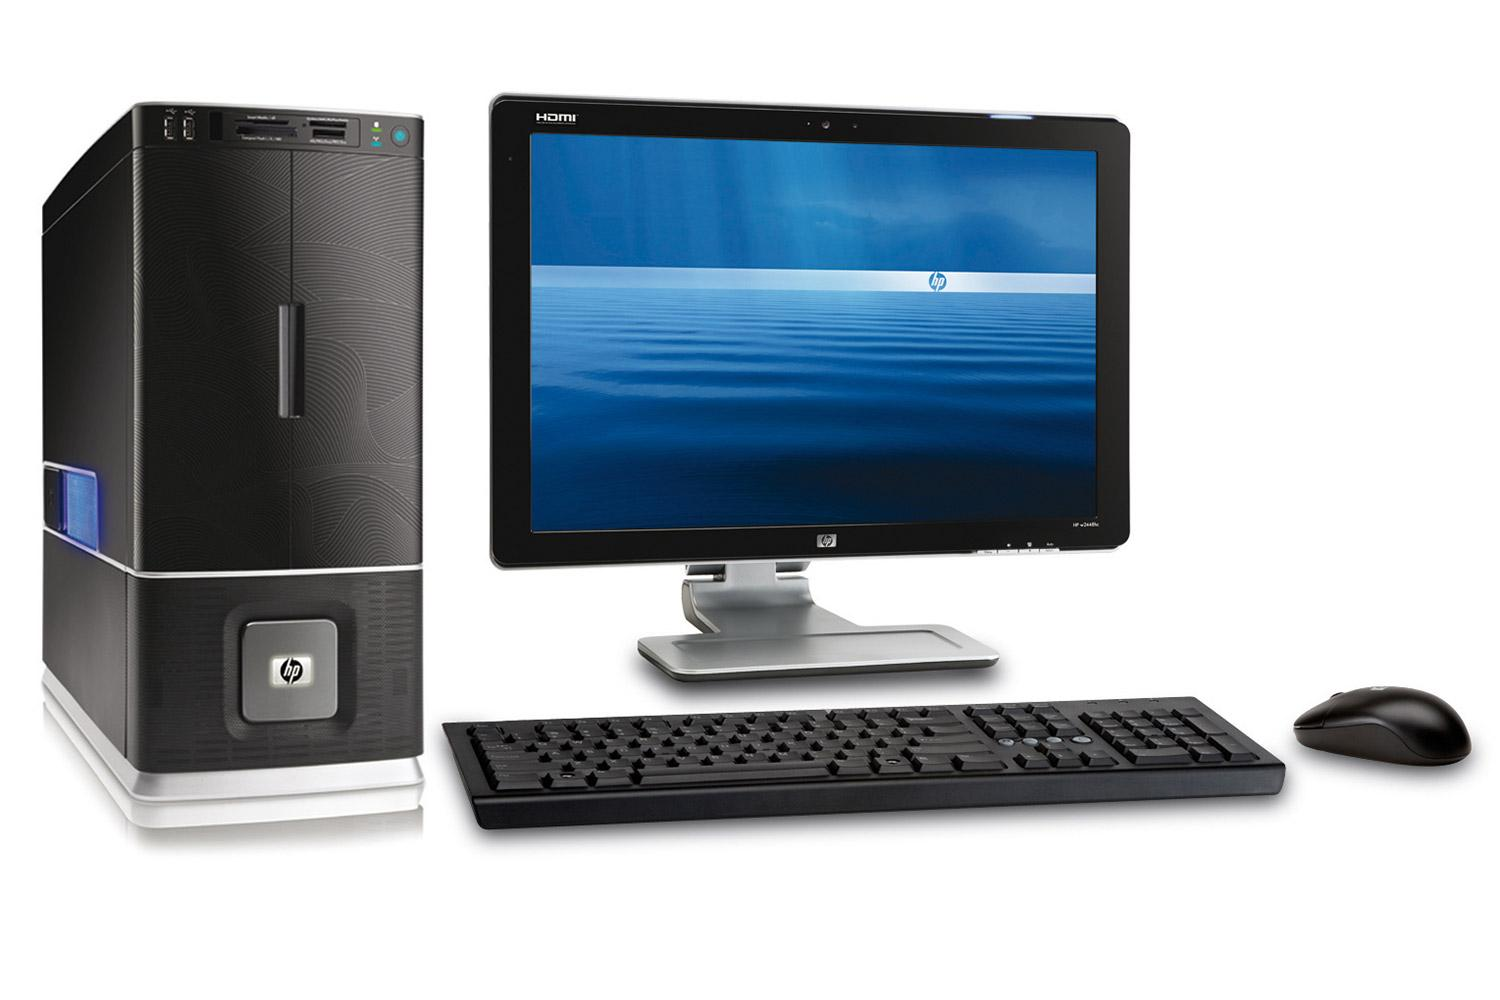 PC sales fall for sixth quarter in a row shift to tablets